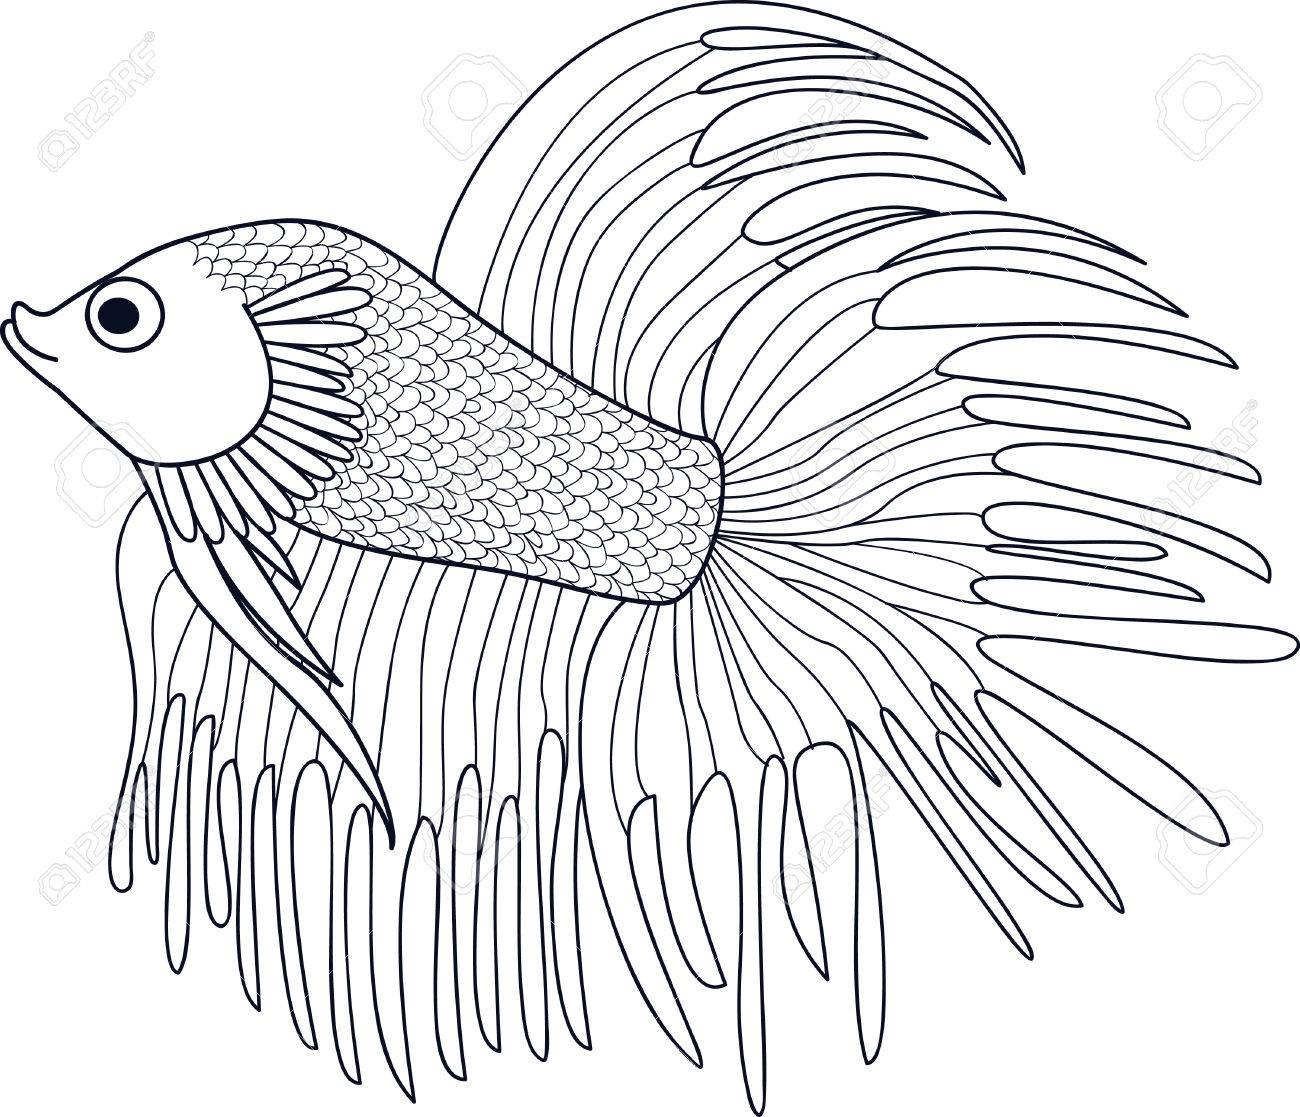 Fish Cockerel Sketch Of Aquarium Fish Vector Royalty Free Cliparts